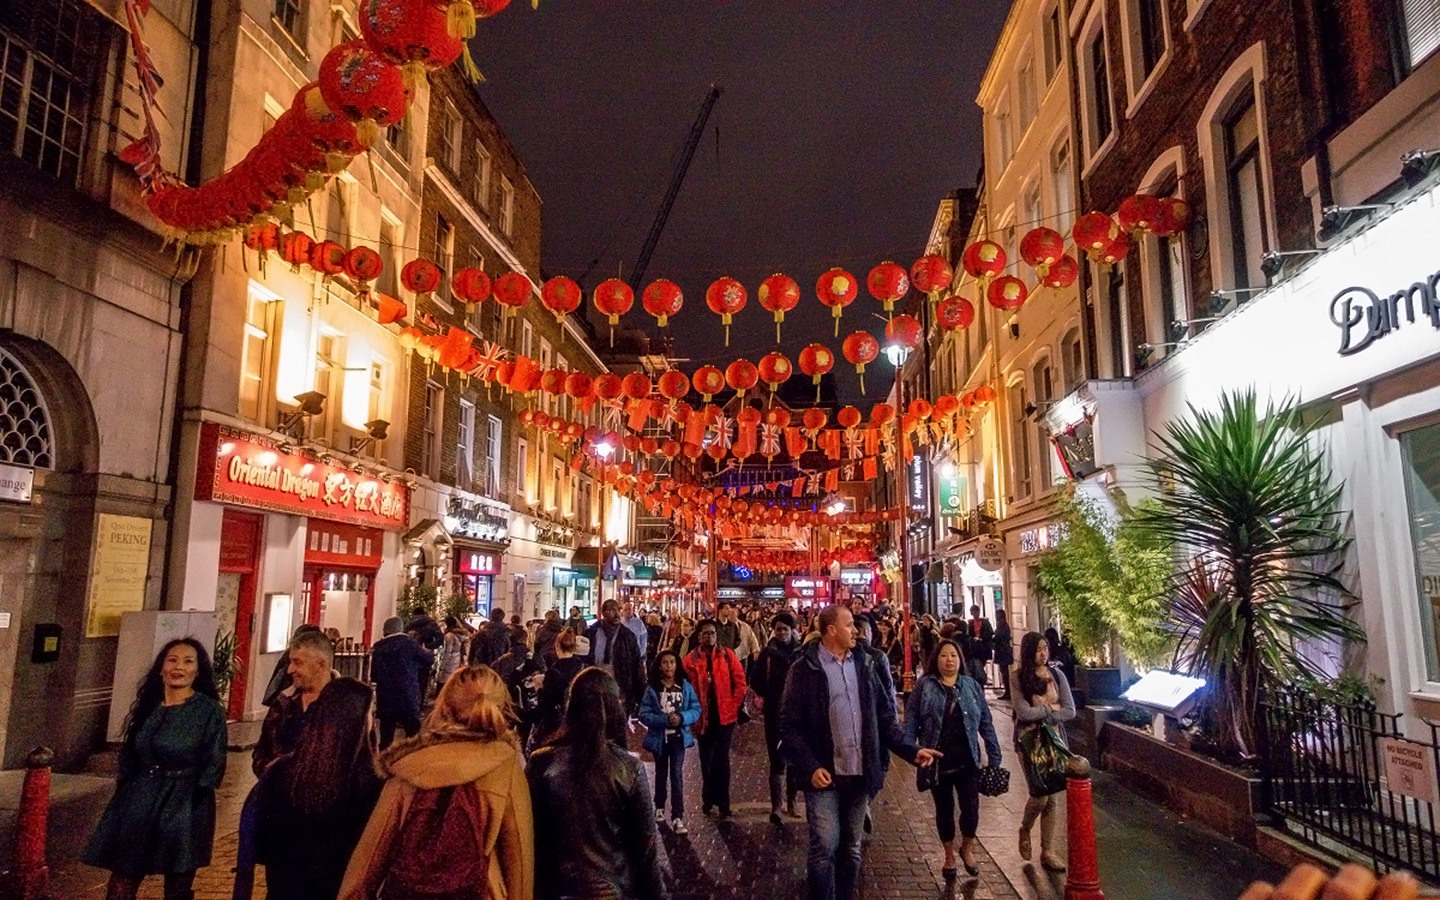 The streets of Soho on a Twilight food tour